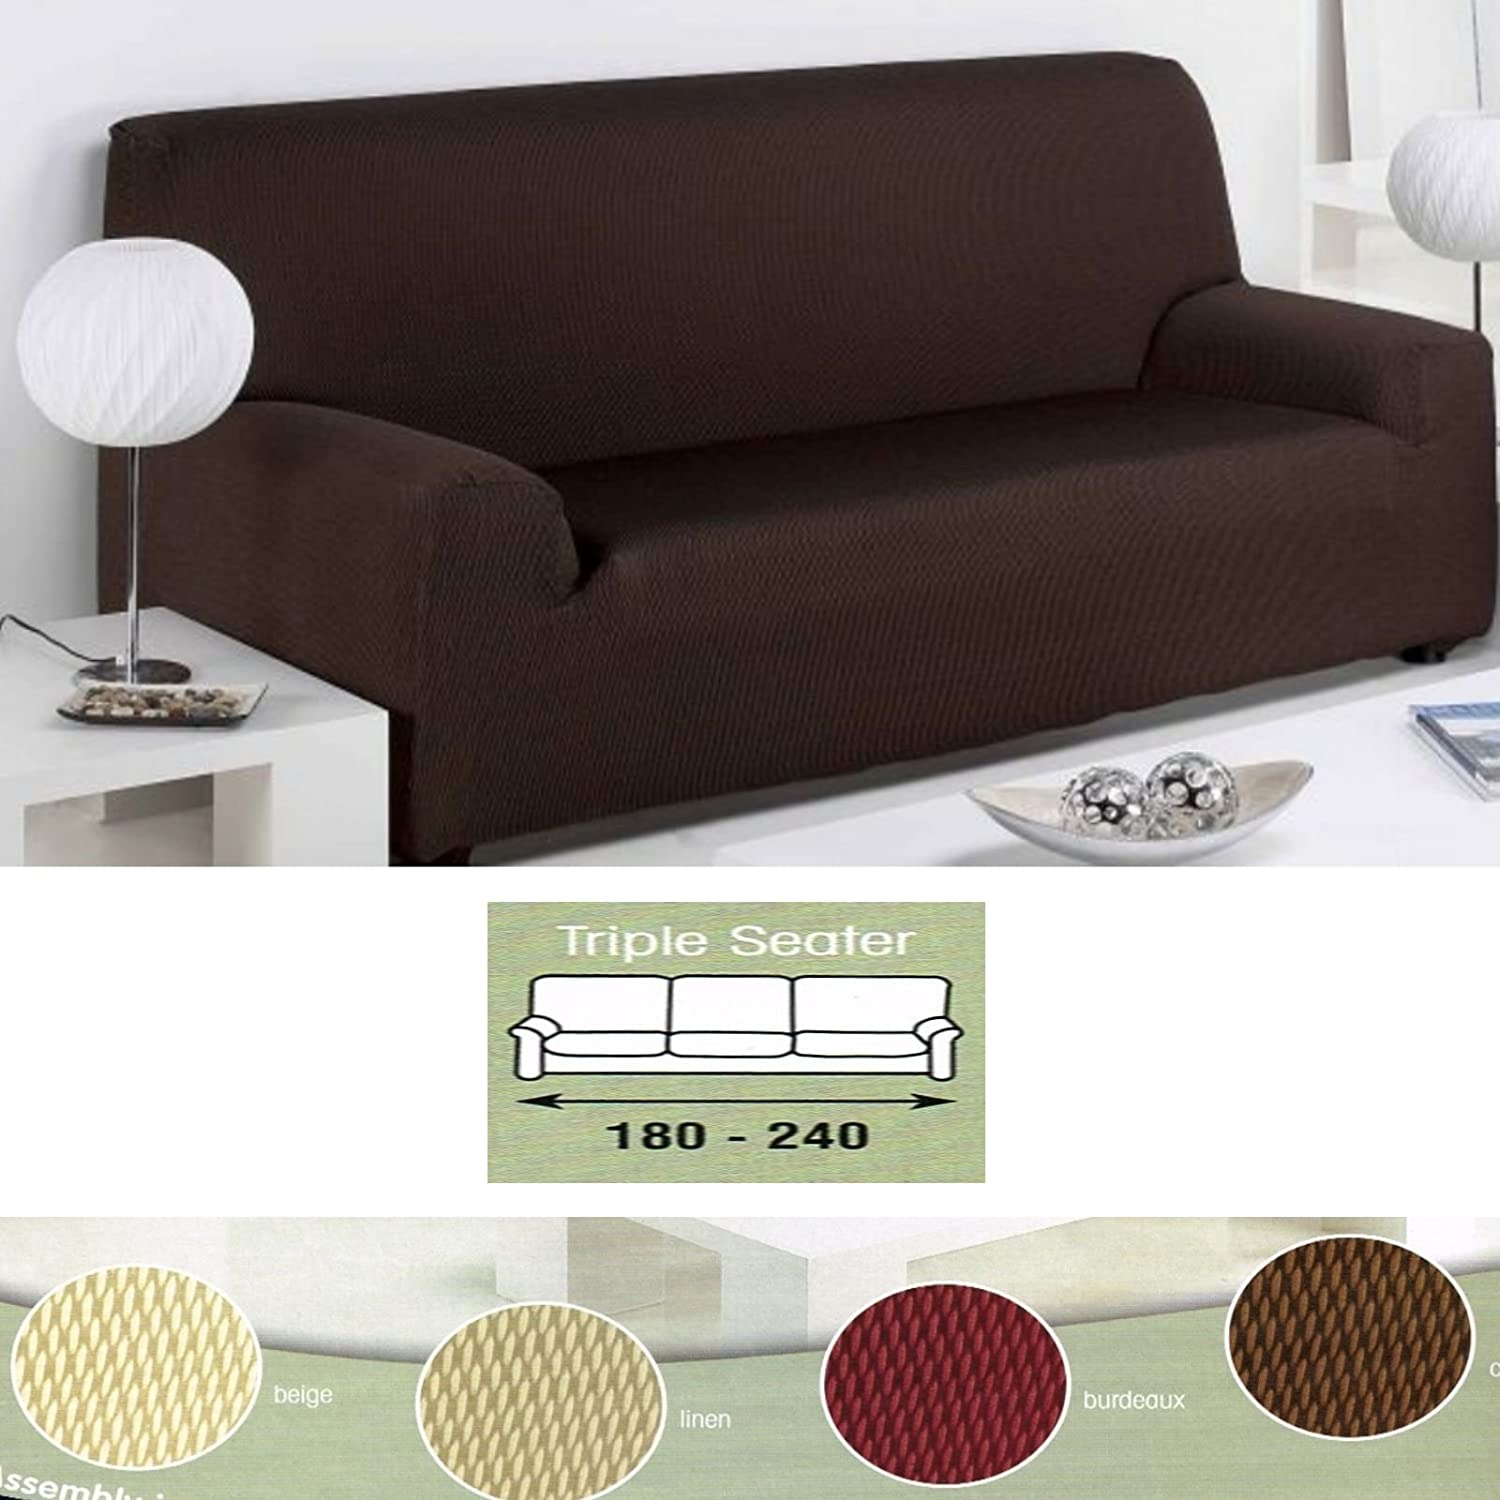 Easy Fit Stretch Elastic Couch Settee Three Seater Sofa Burdeaux